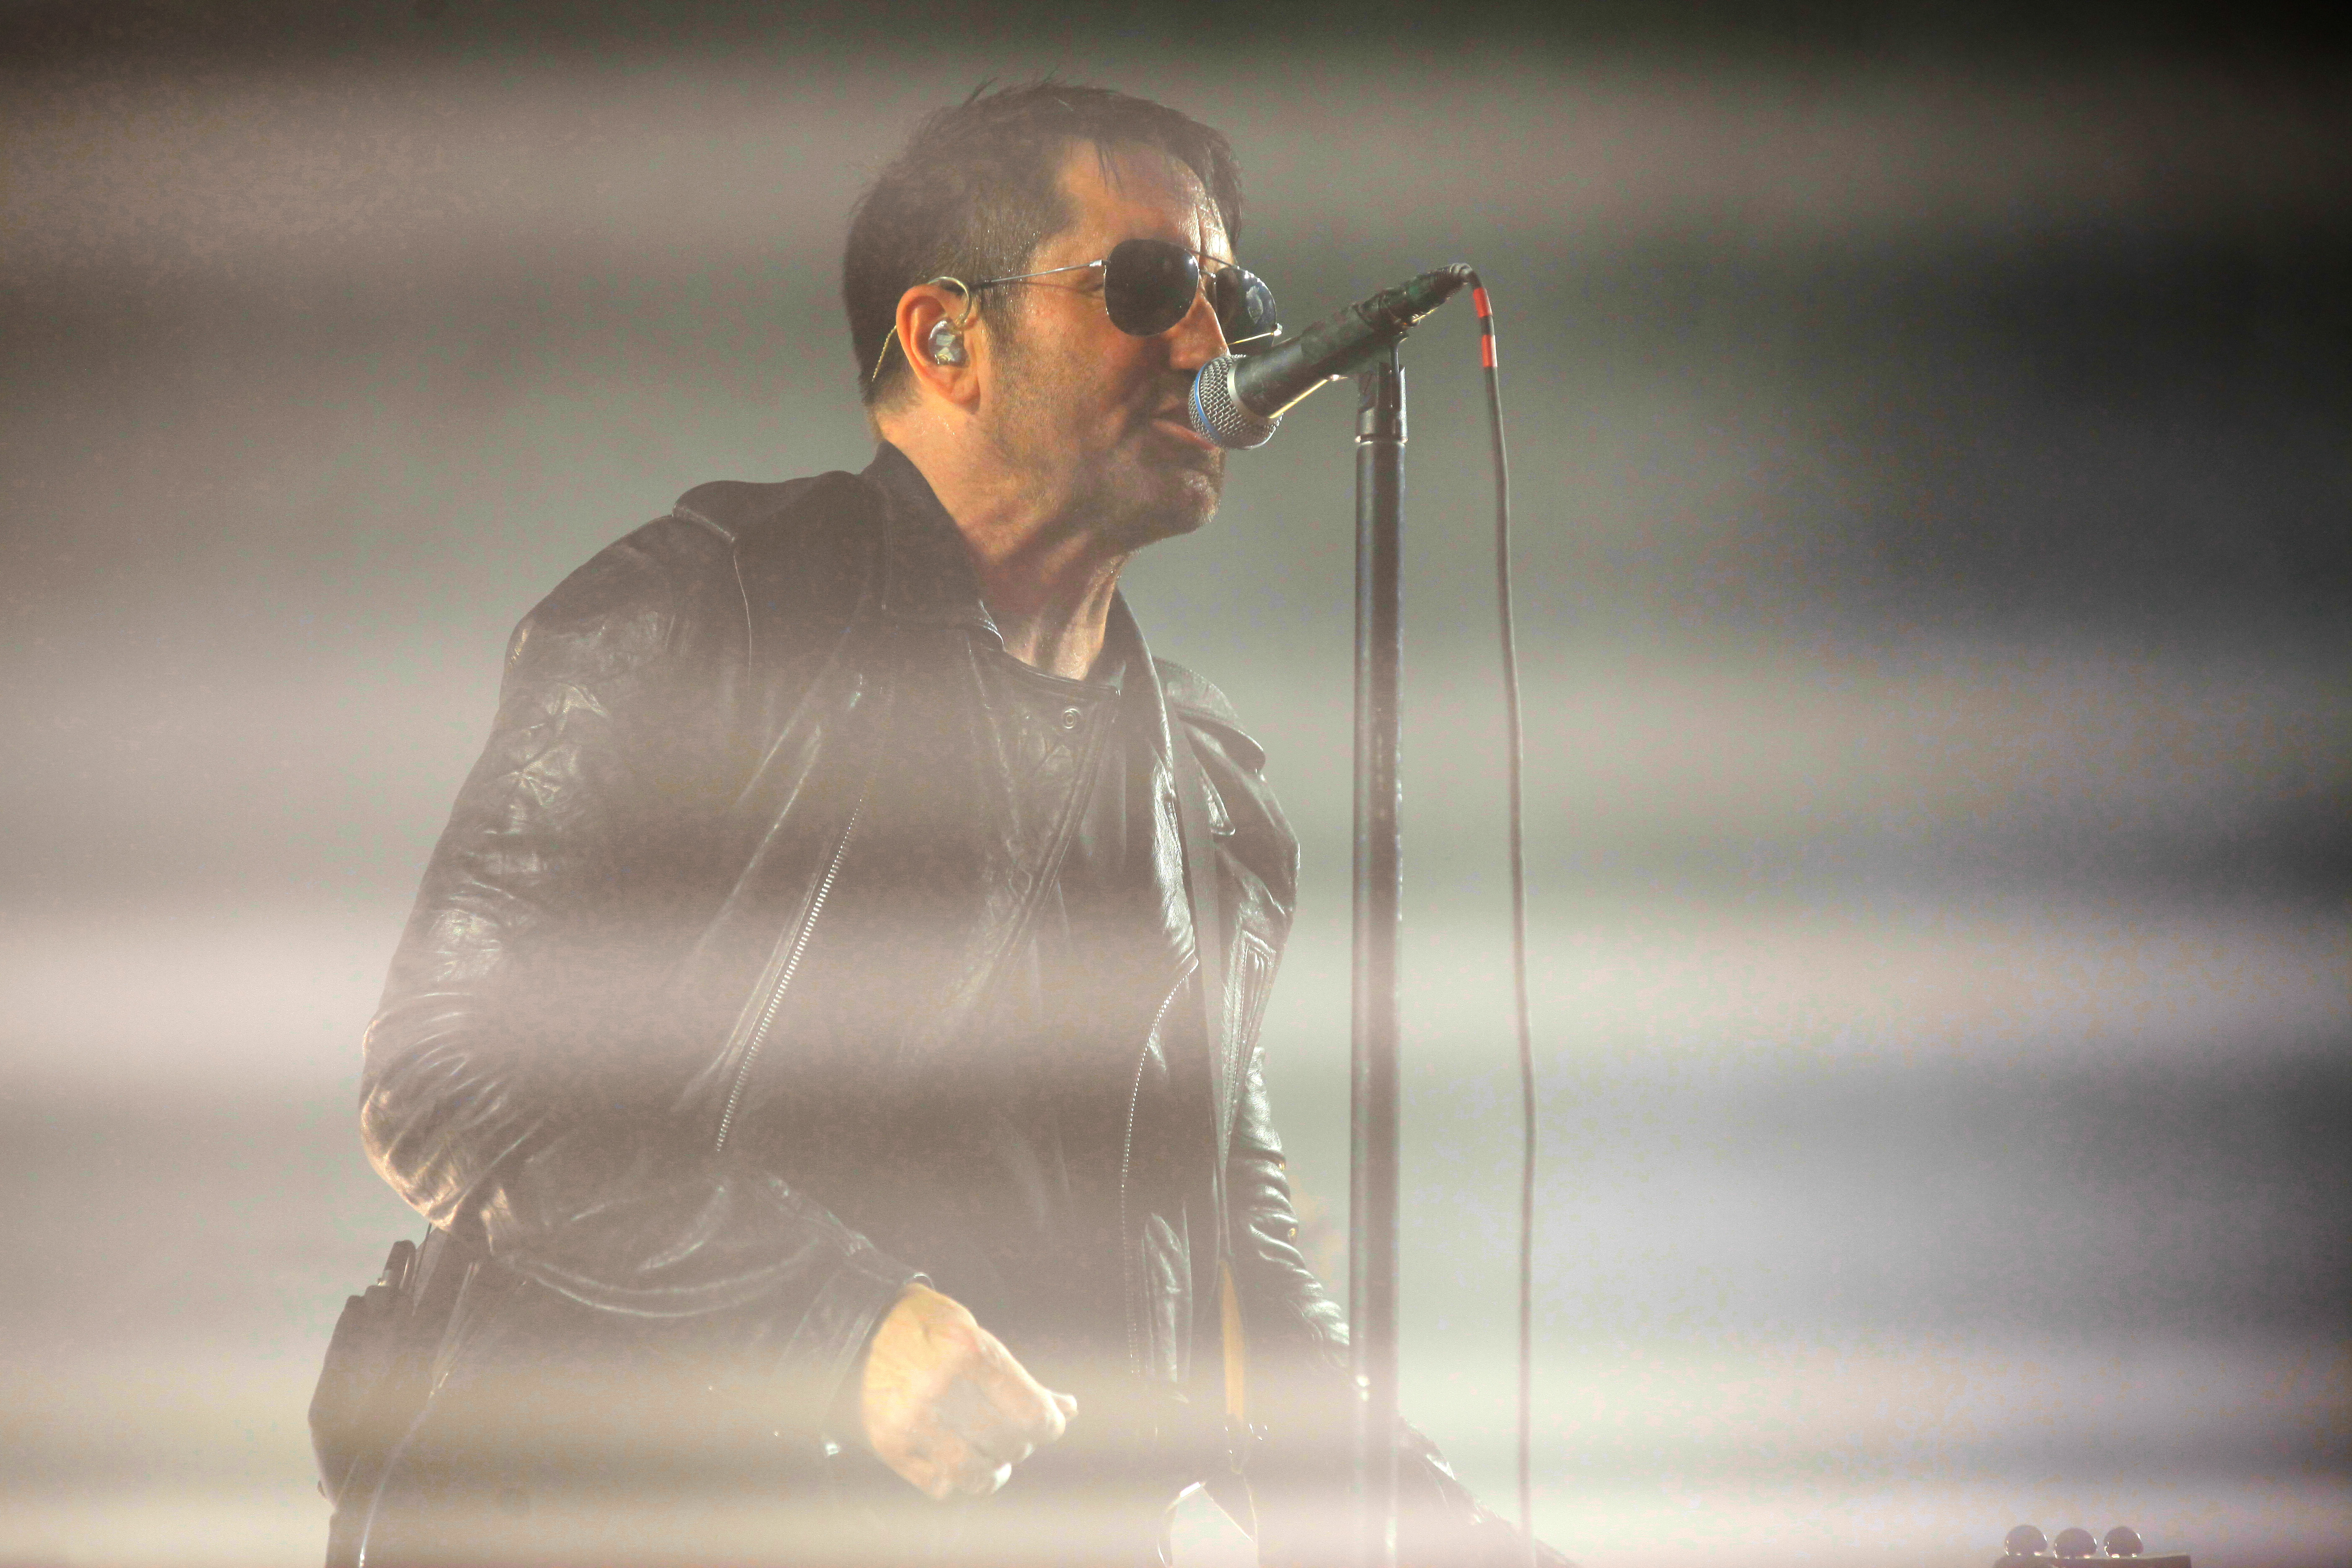 NIN really came to be because Trent Reznor was a janitor at a recording studio whose owner let him record for free during open studio time. The lesson? Even if your job isn't exactly in your desired field, you never know what might come from it.